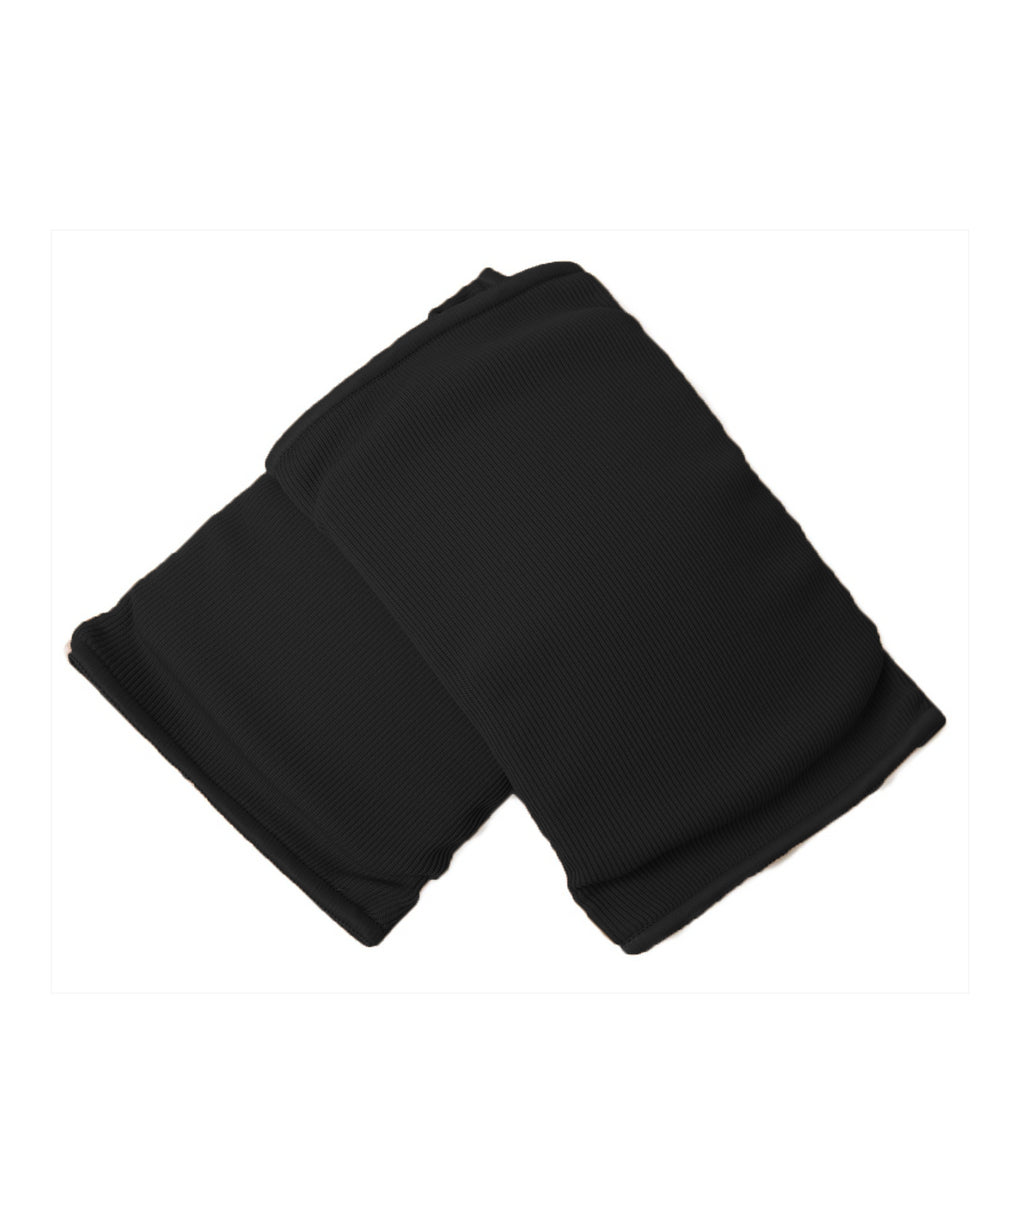 Black knees pads